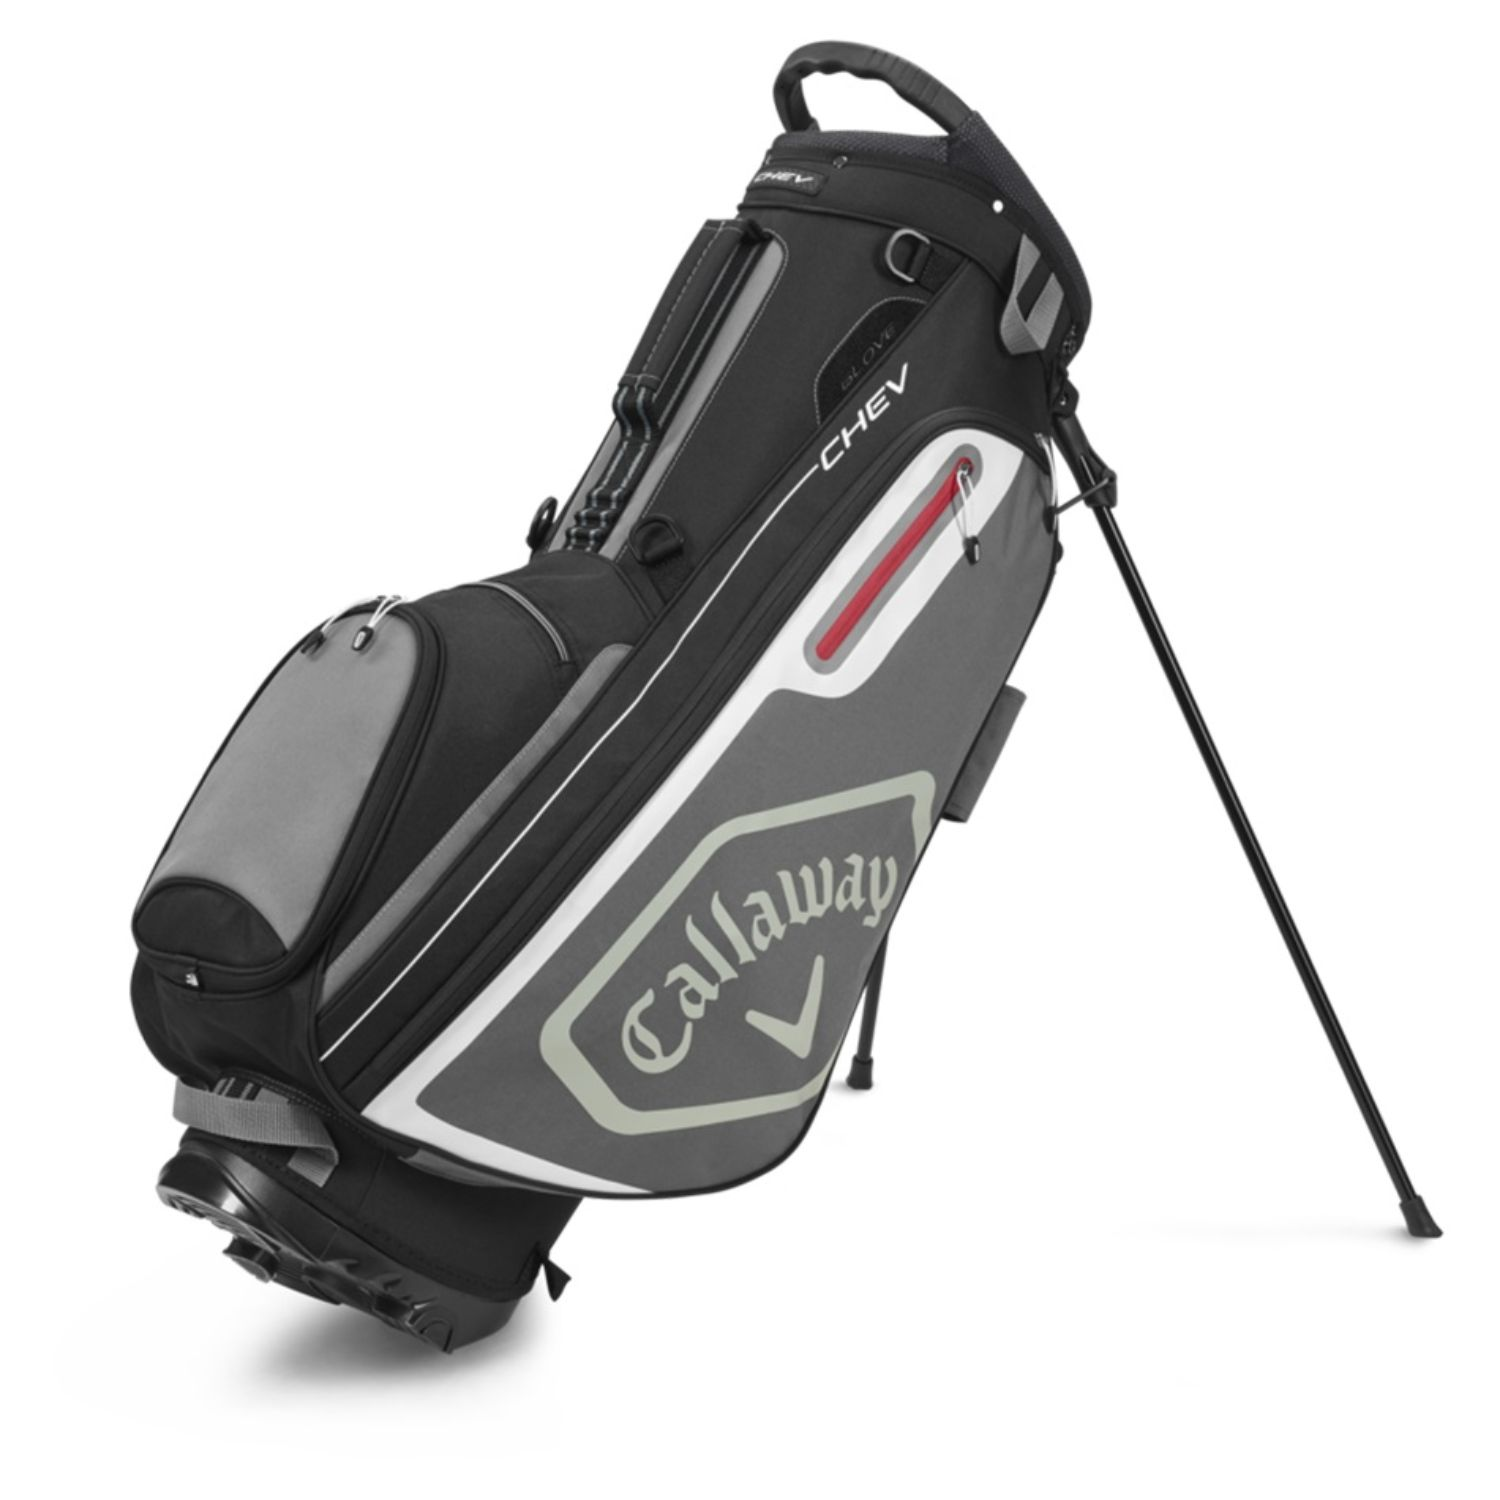 Callaway Golf 2020 Chev Stand Bag-Black-Charcoal-White